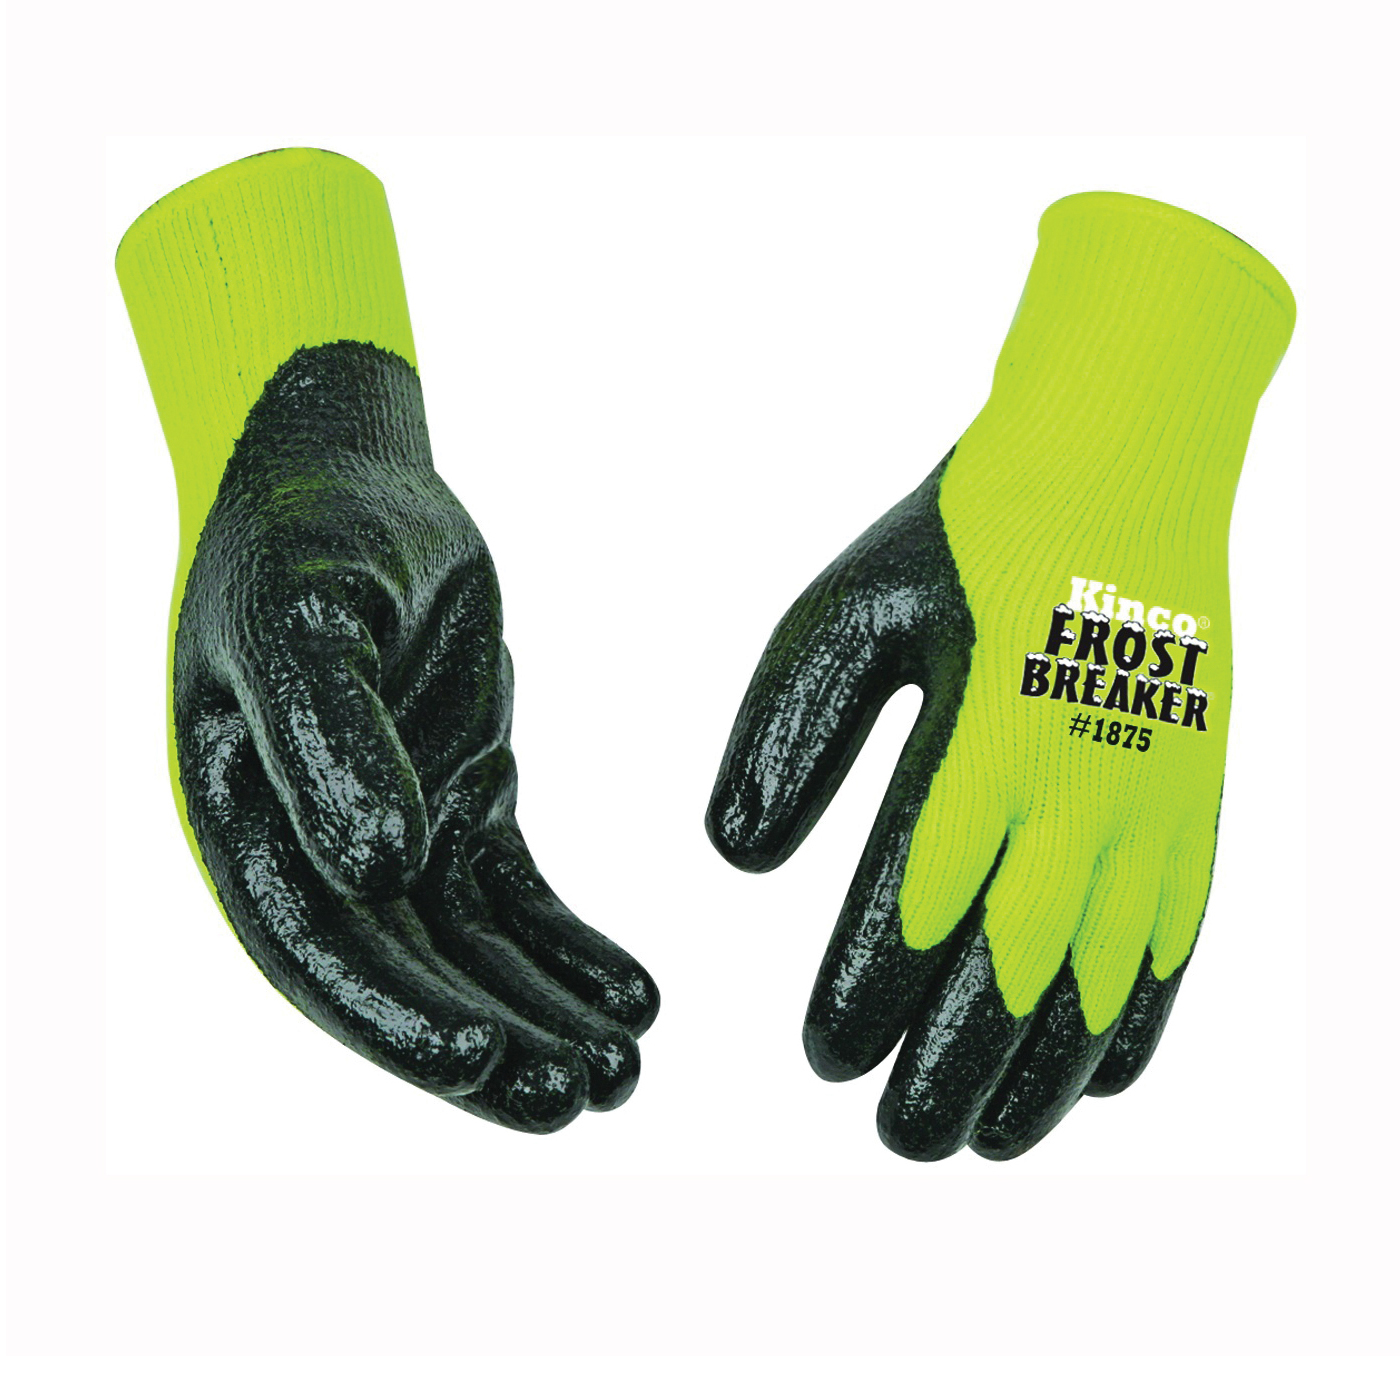 Picture of Frost Breaker 1875-L High-Visibility High-Dexterity Protective Gloves, Men's, L, Keystone Thumb, Knit Wrist Cuff